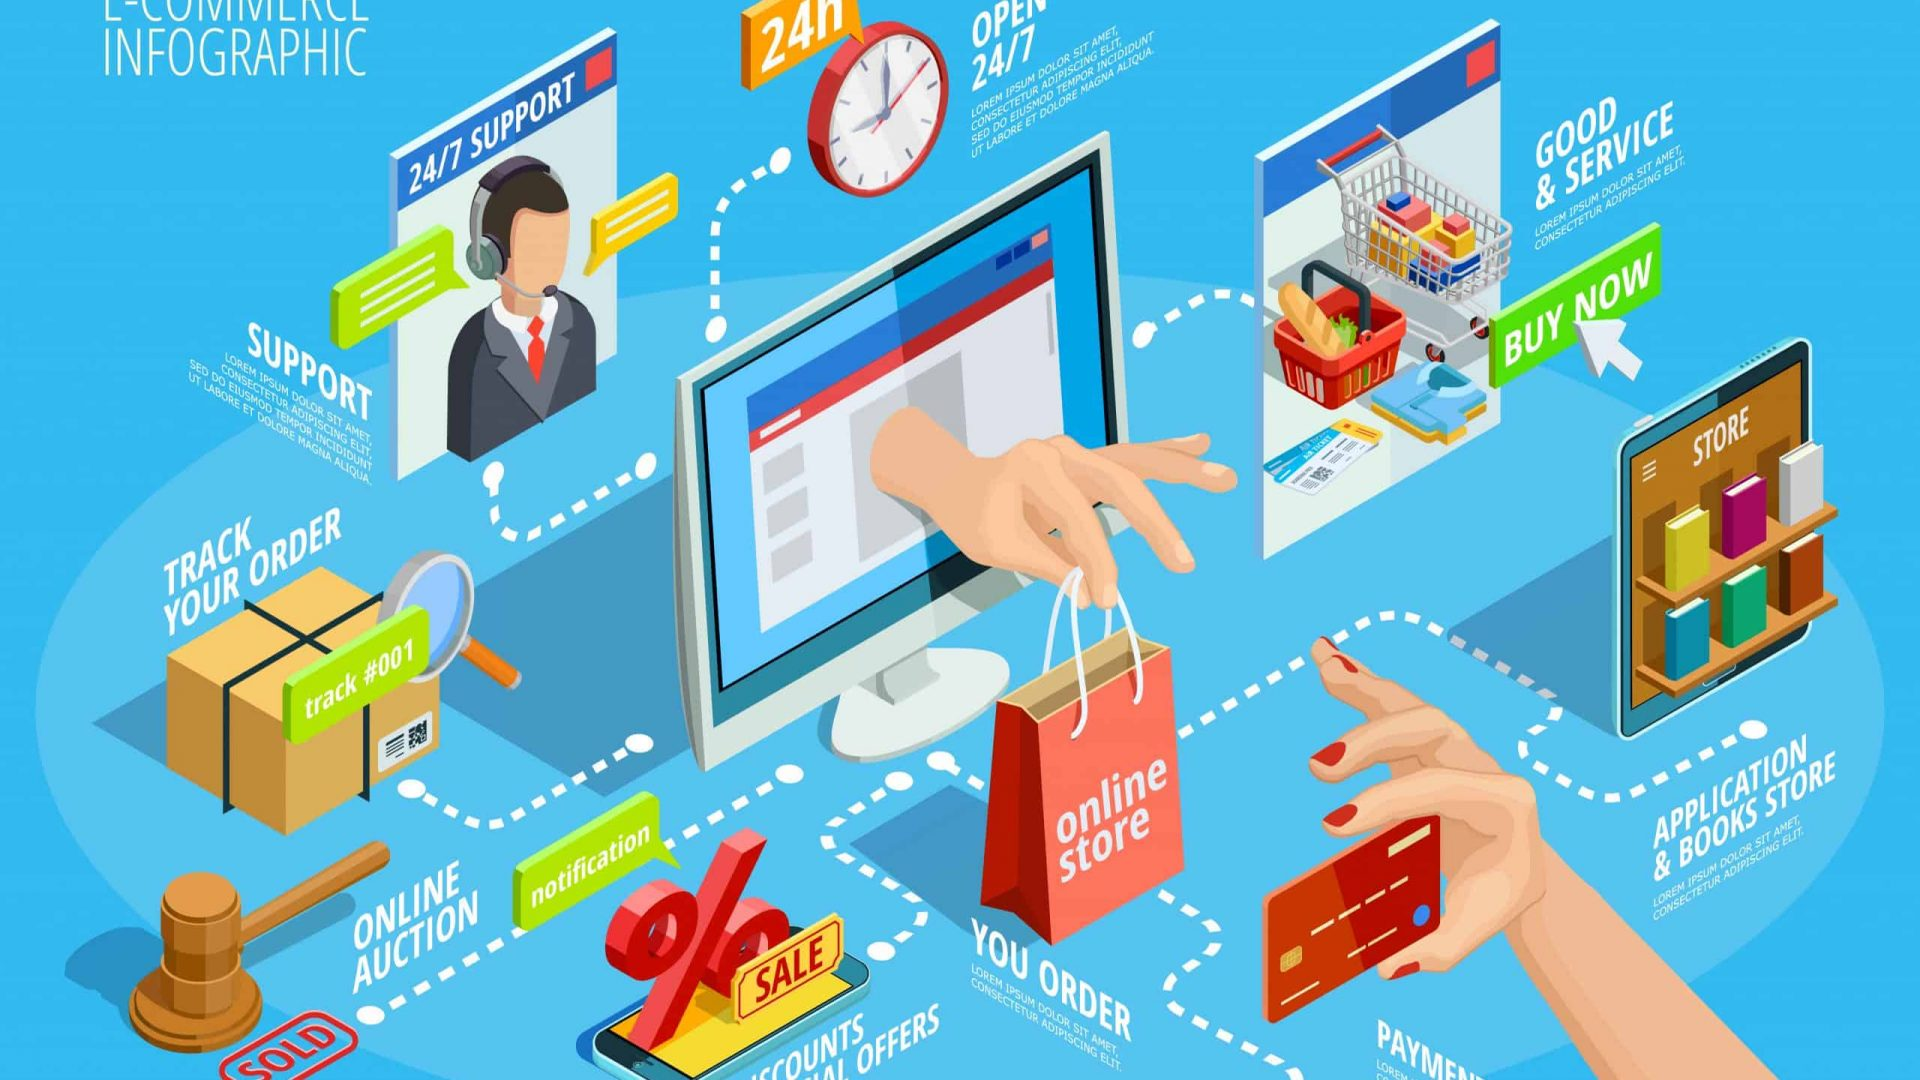 Online shopping ecommerce 24 hours customer support service.